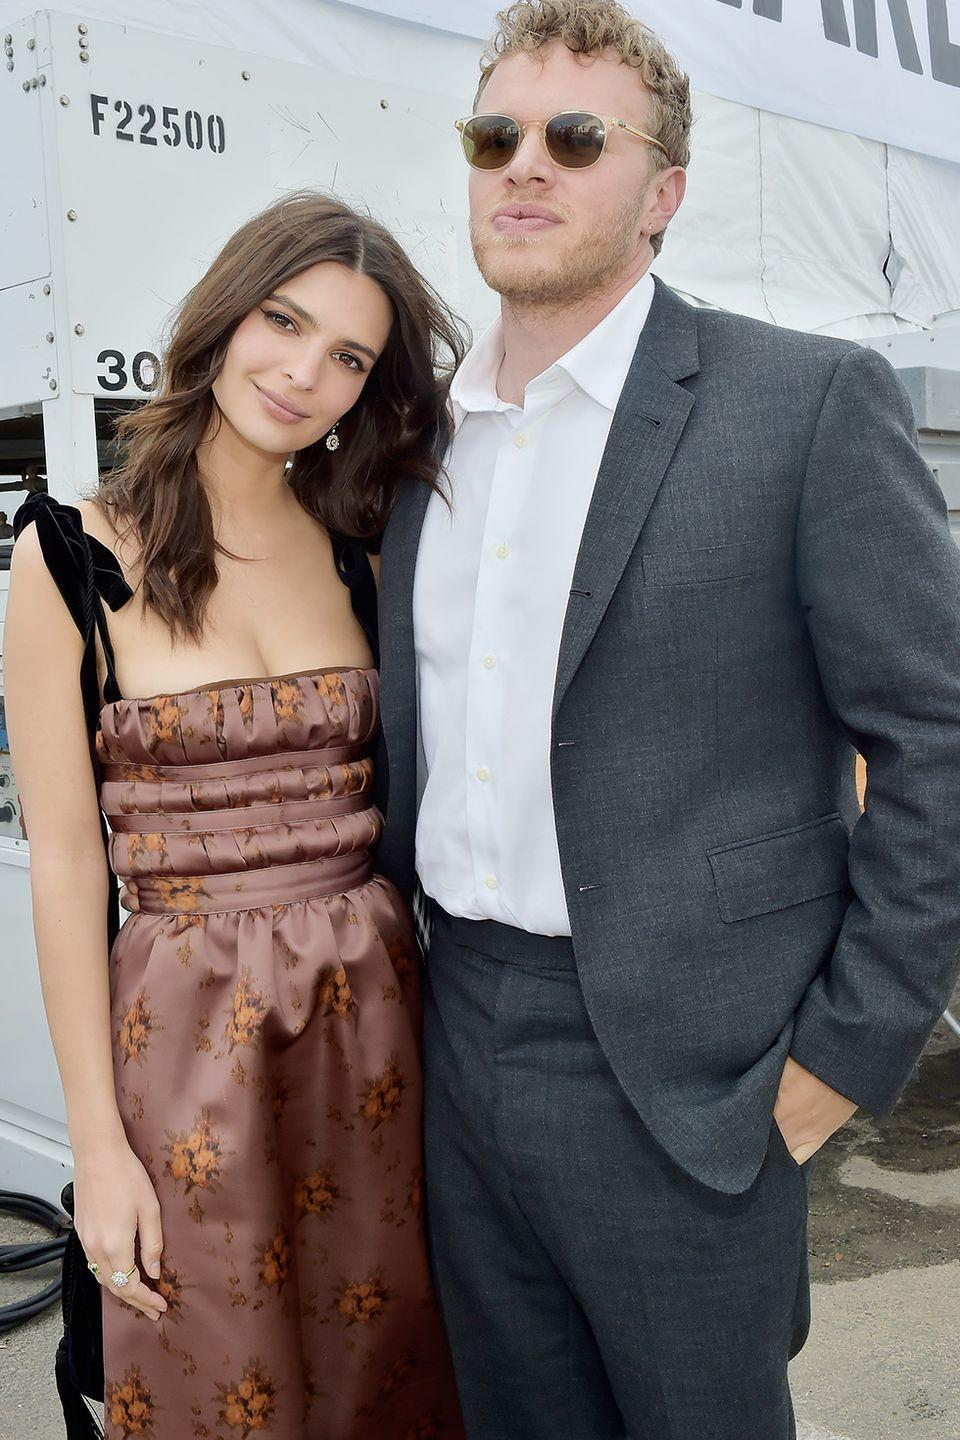 "<p>He may not have had a ring in hand when he popped the Q to Emily, she said on <a class=""link rapid-noclick-resp"" href=""https://people.com/style/emily-ratajkowski-husband-didnt-propose-with-engagement-ring/"" rel=""nofollow noopener"" target=""_blank"" data-ylk=""slk:The Tonight Show Starring Jimmy Fallon""><em>The Tonight Show Starring Jimmy Fallon</em></a>, but that didn't matter. He proposed at New York City restaurant Minetta Tavern after a few weeks of dating. She said yes.</p>"